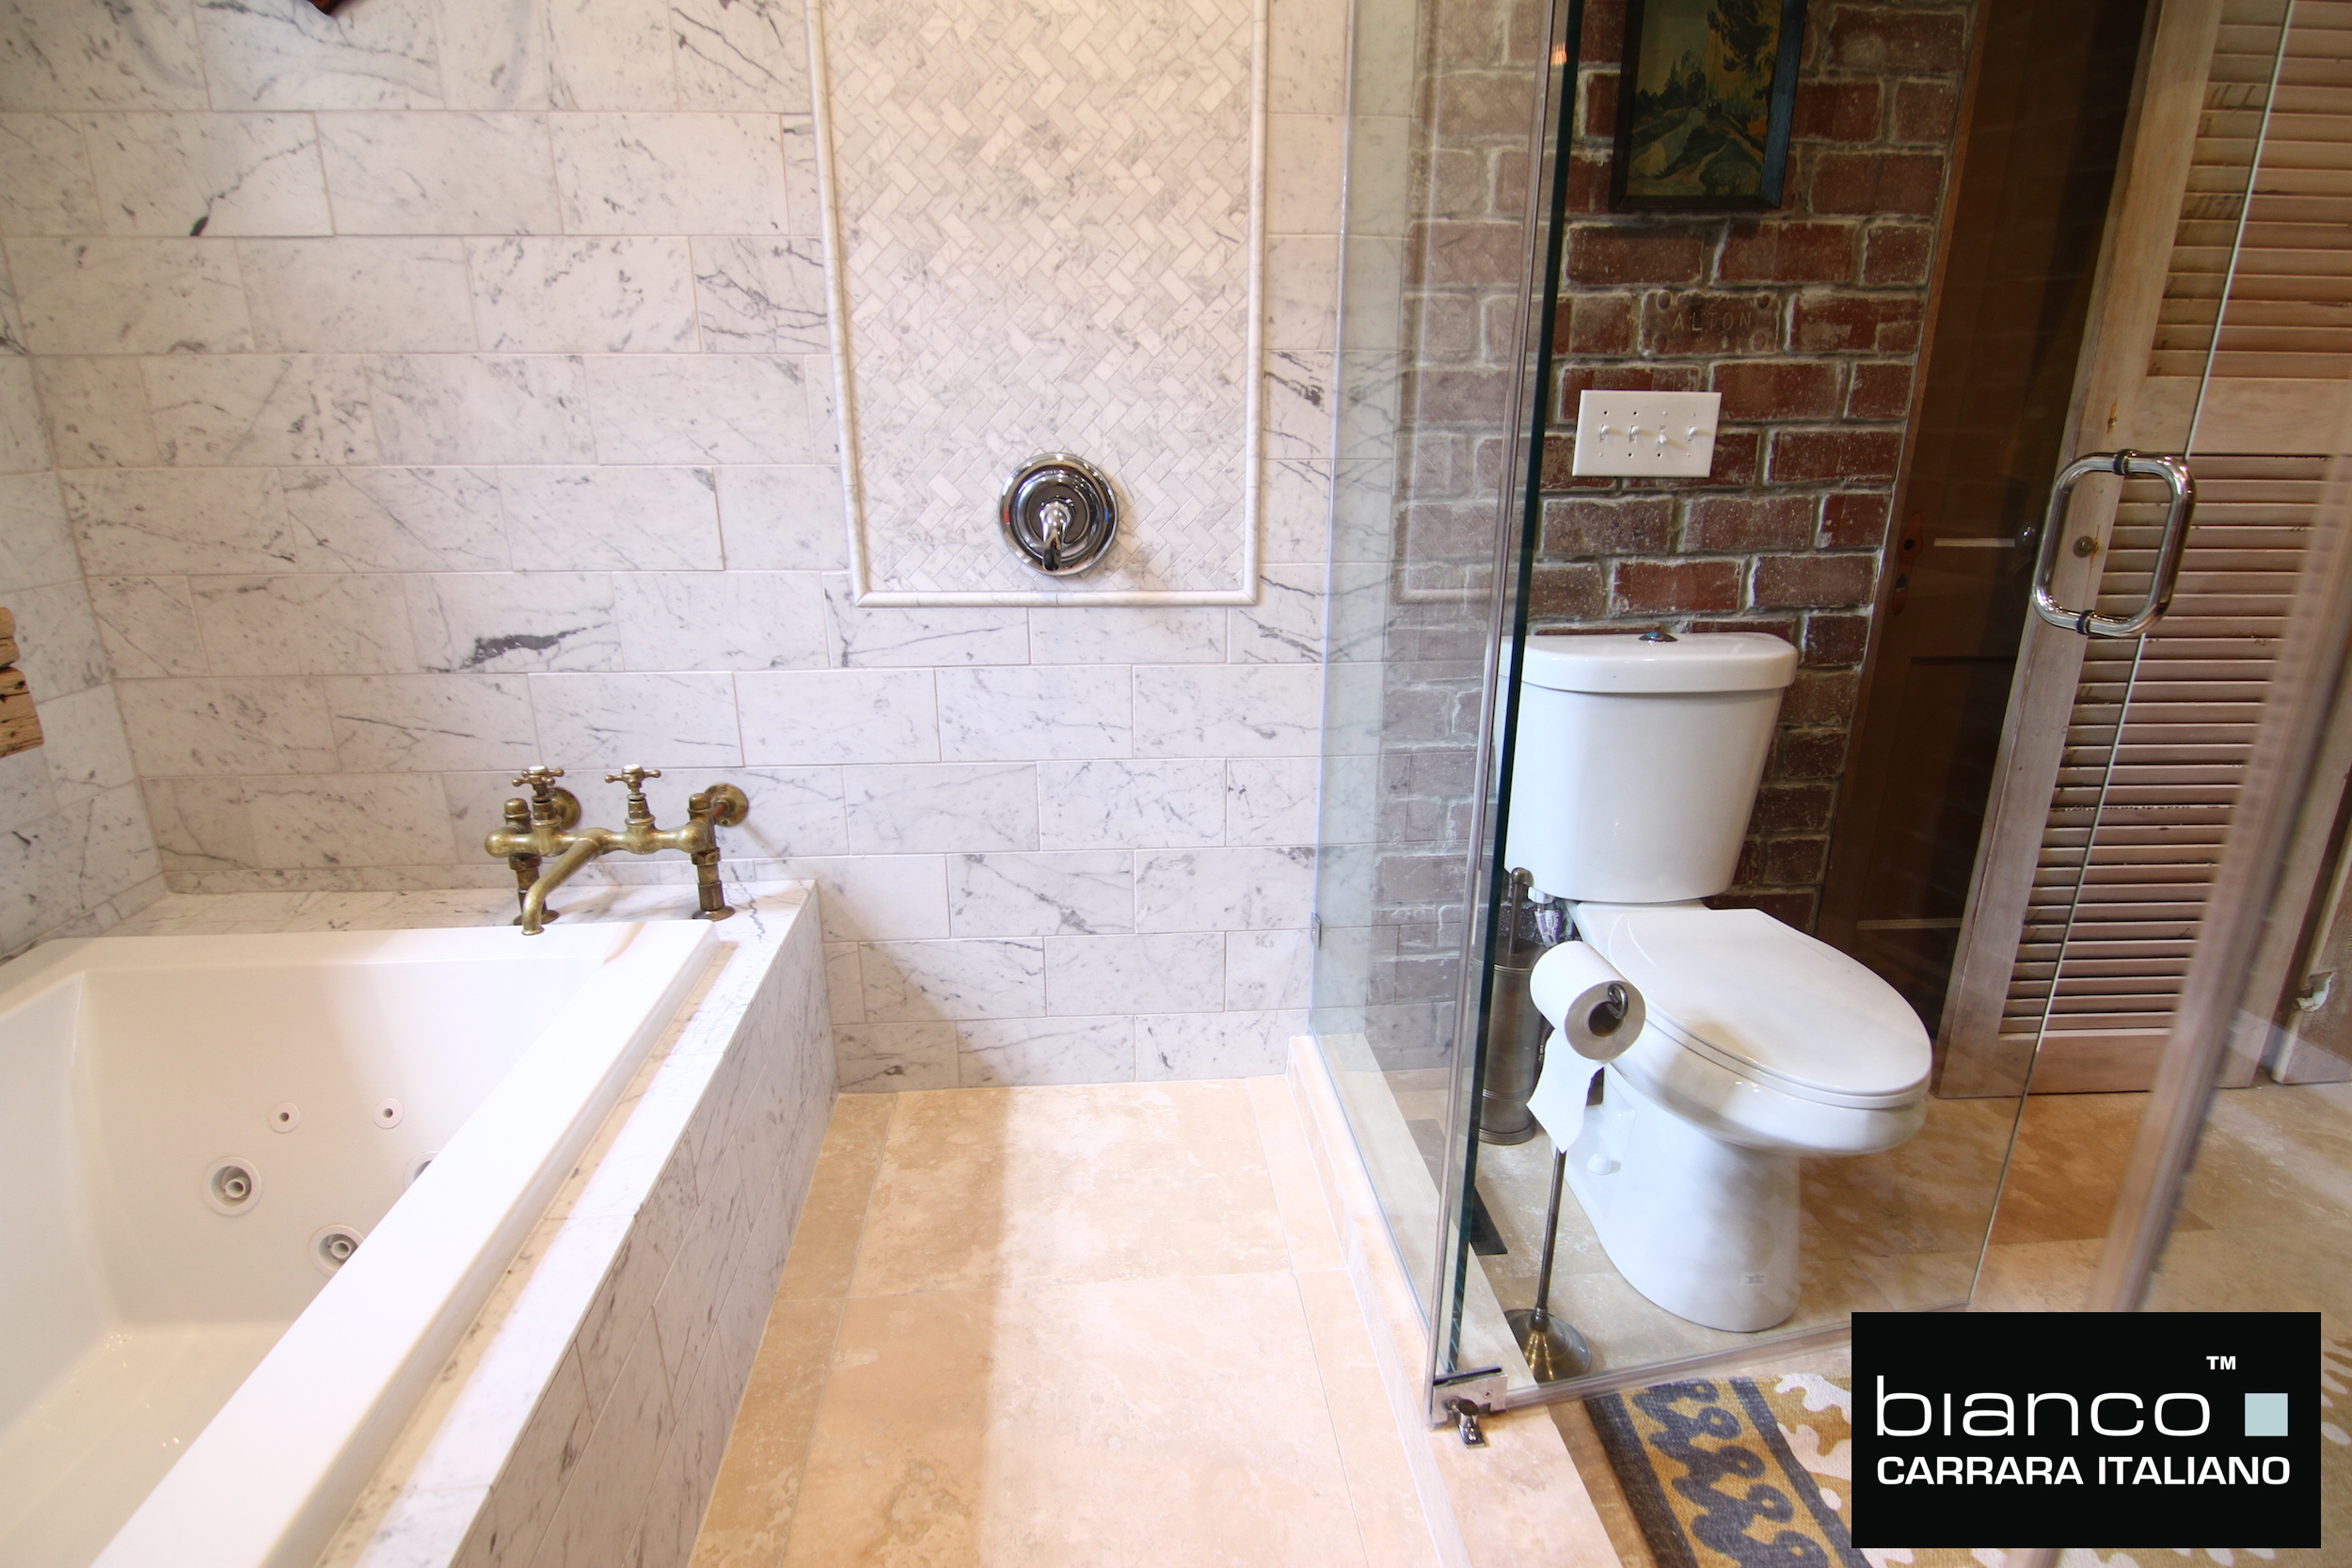 DIY Network Bianco Carrara1